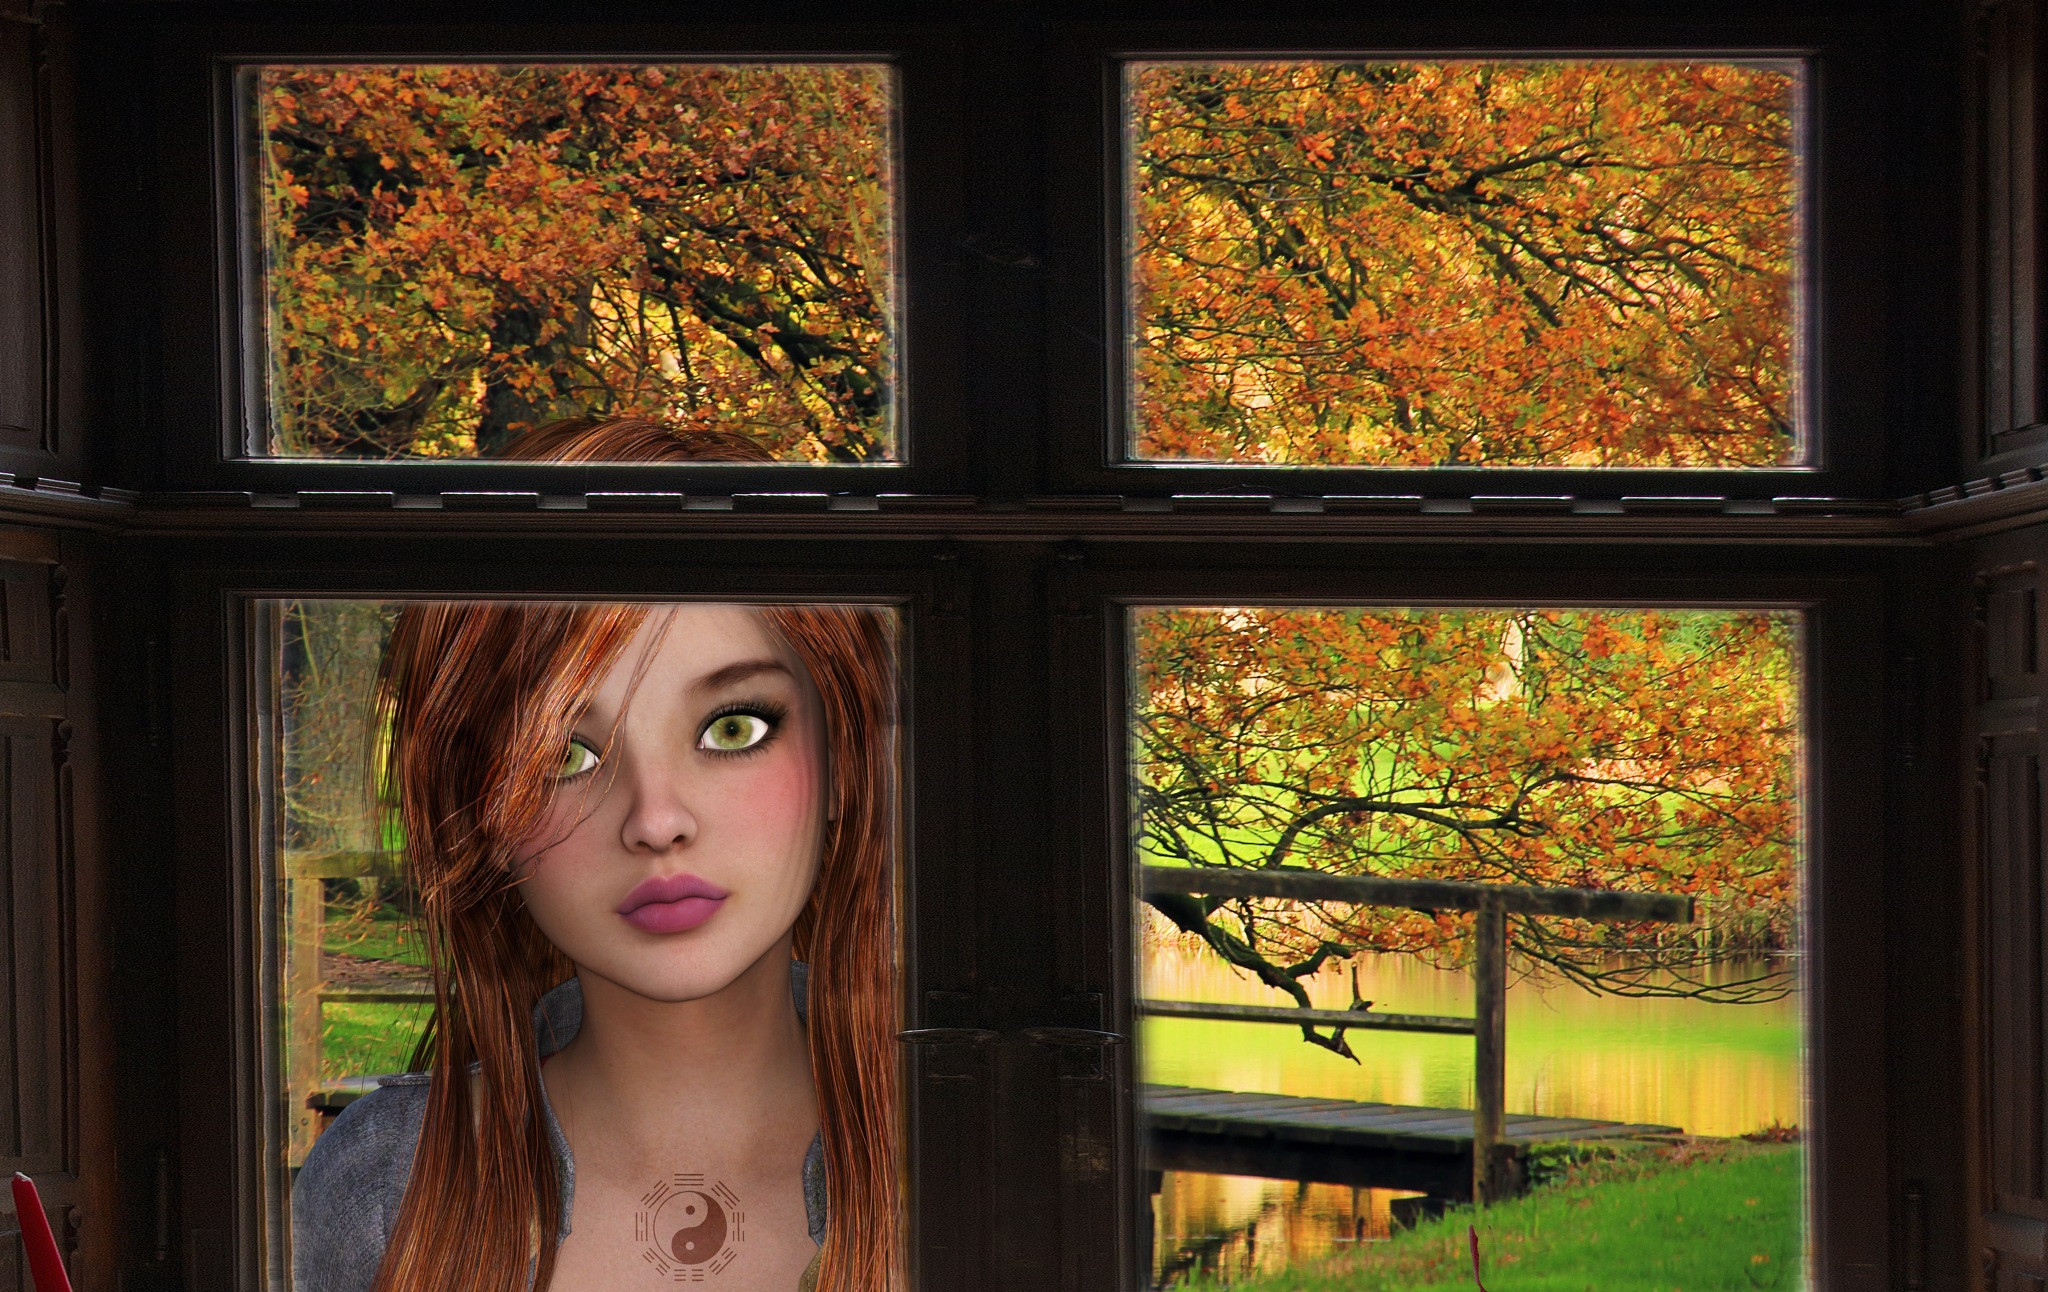 The girl behind the window by Cor.G.  Amature Photographer